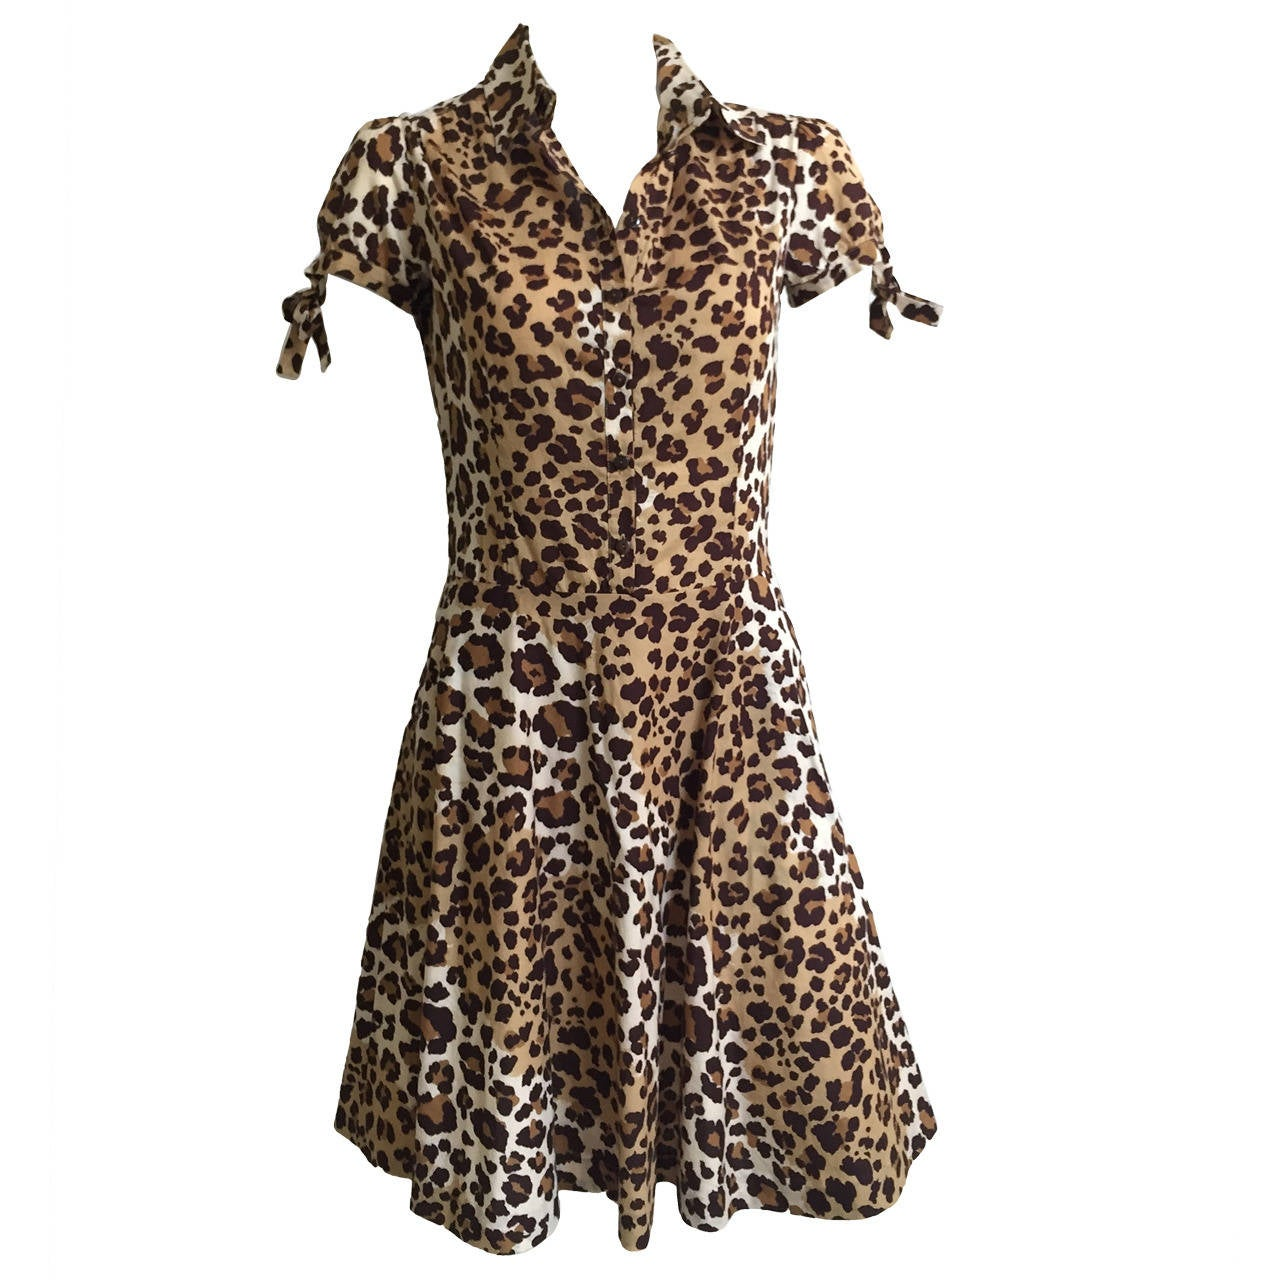 Moschino cheetah print dress with pockets size 6. 1